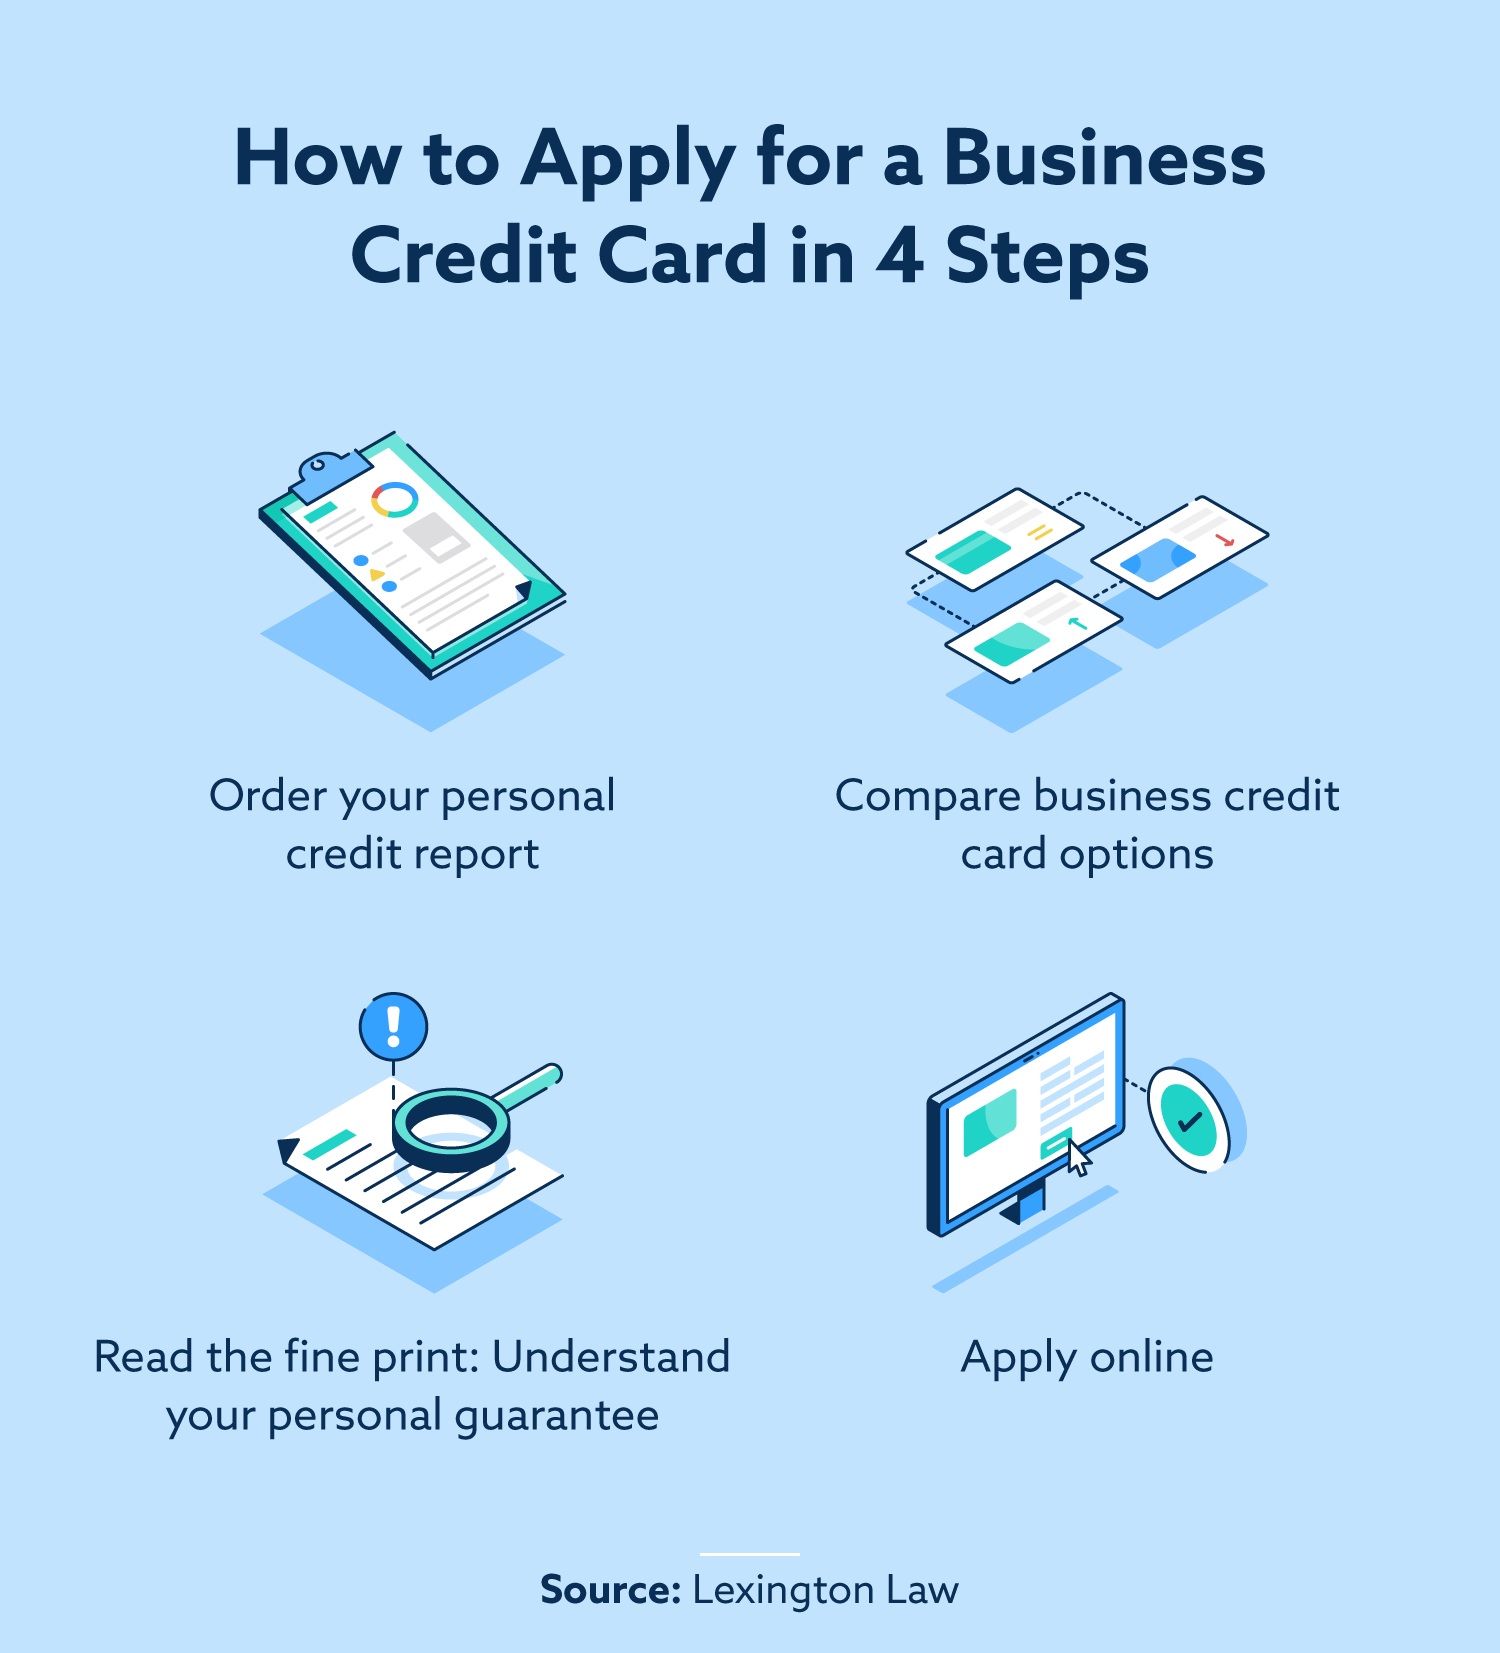 How to Apply for a Business Credit Card in 4 Steps: 1. Order your personal credit report. 2. Compare business credit card options. 3. Read the fine print and understand your personal guarantee. 4. Apply online.